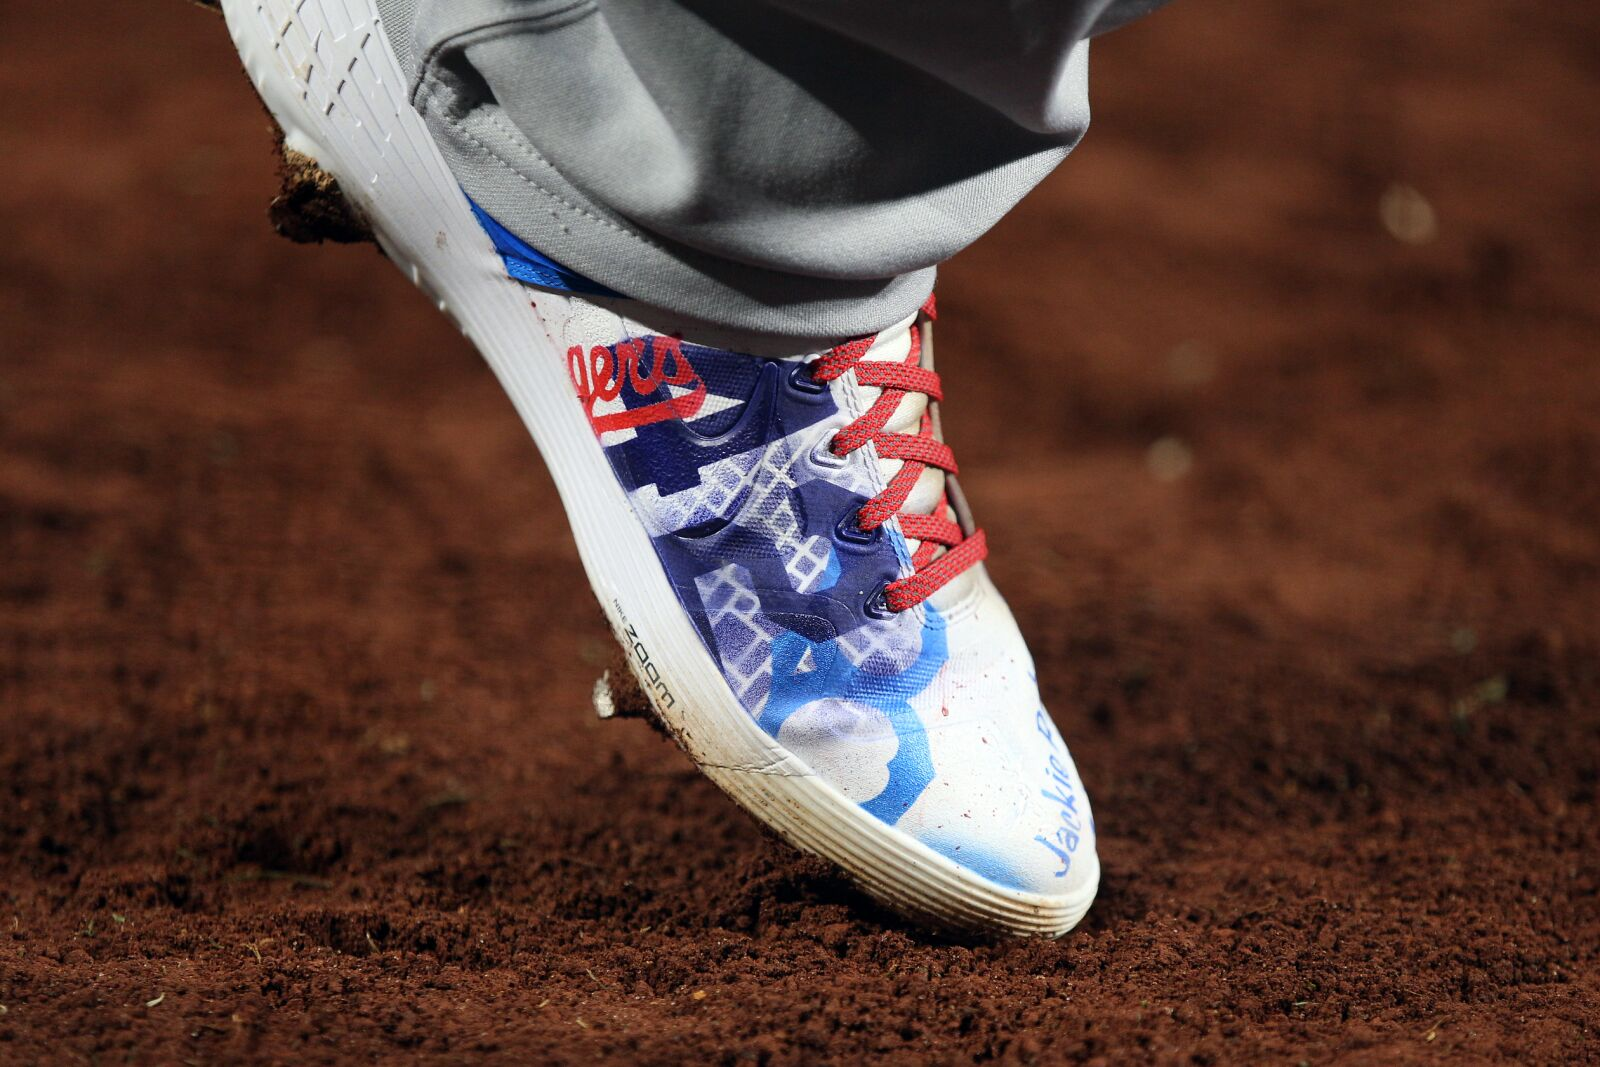 b551044d7 MLB Players Wear '42' on Their Cleats to Pay Tribute to Jackie Robinson